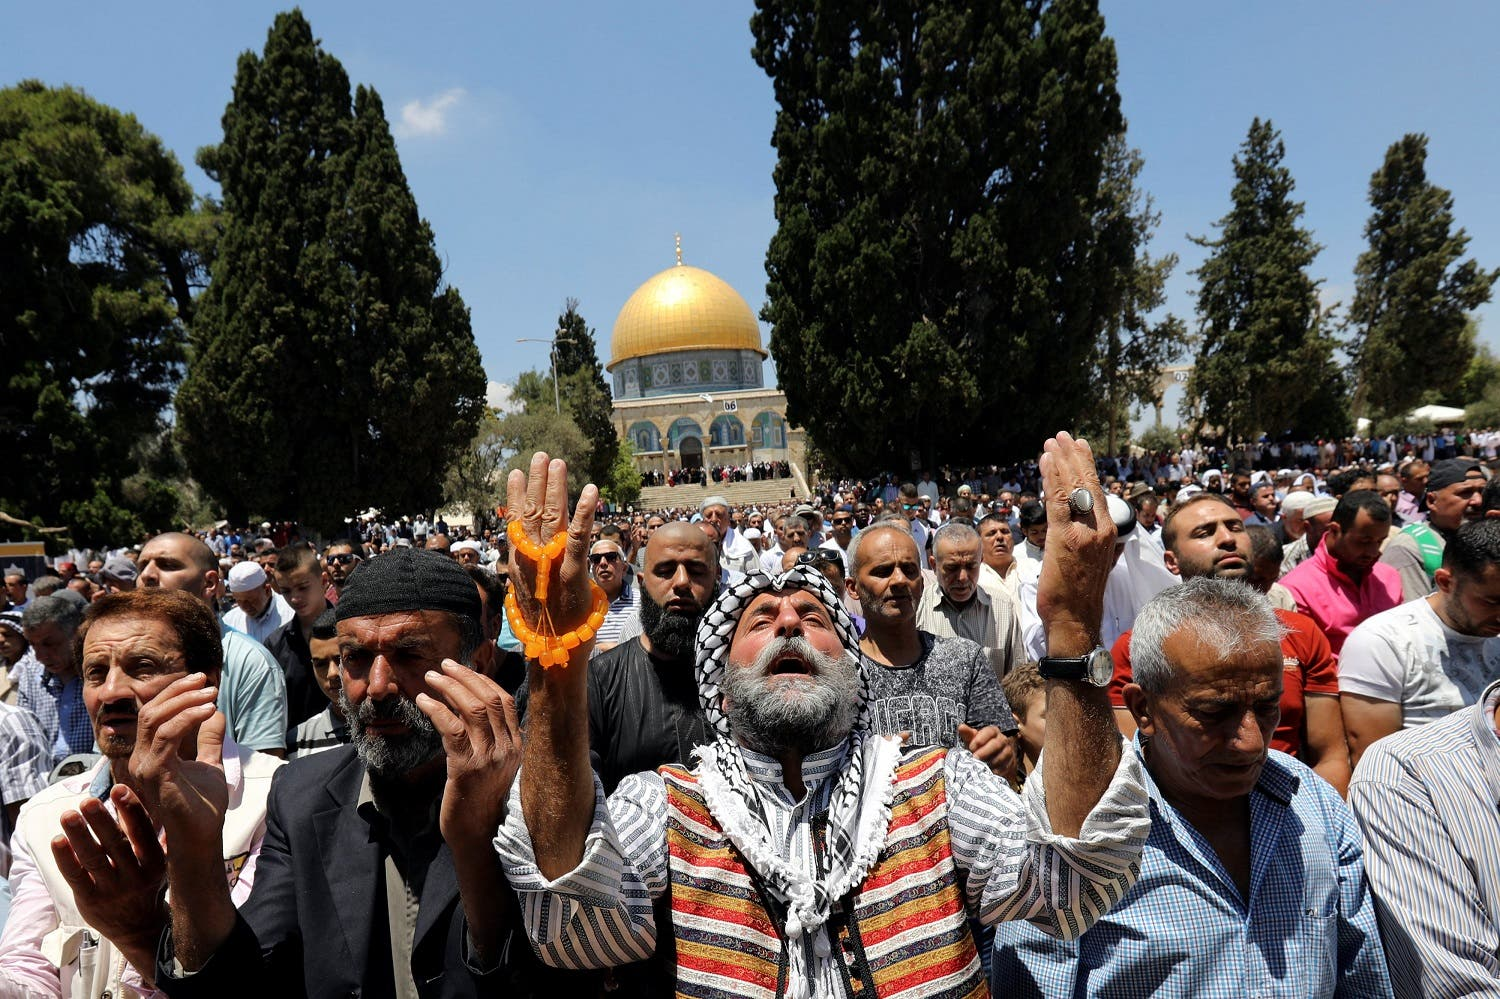 Muslim men pray on the last Friday of Ramadan in front of the Dome of the Rock in Jerusalem's Old City on June 23, 2017. (Reuters)